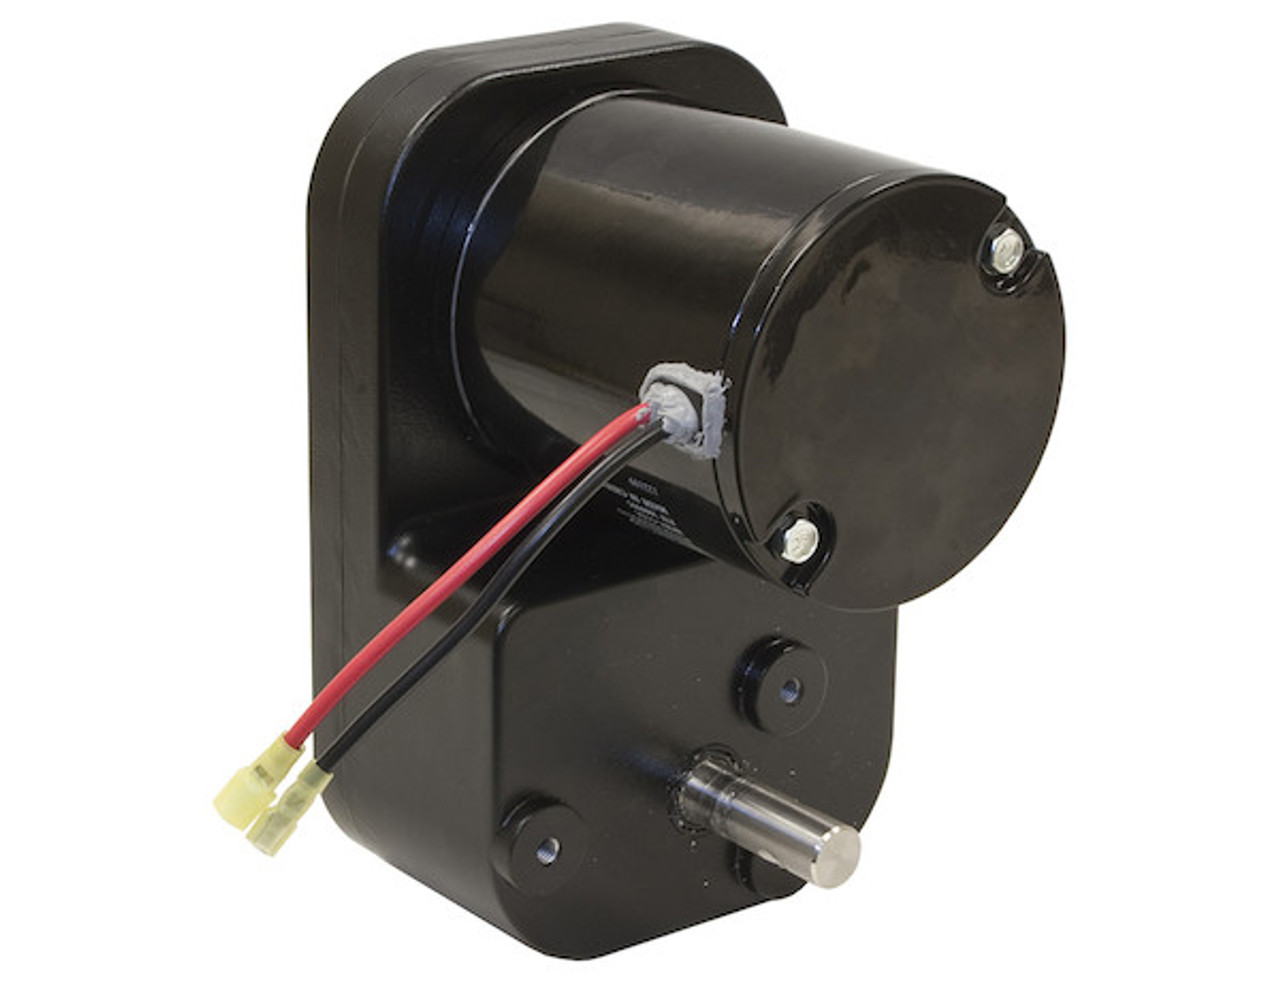 Buyers 3009995 Replacement Auger Gear Motor For SaltDogg SHPE Series Spreaders SHPE1500, SHPE2000